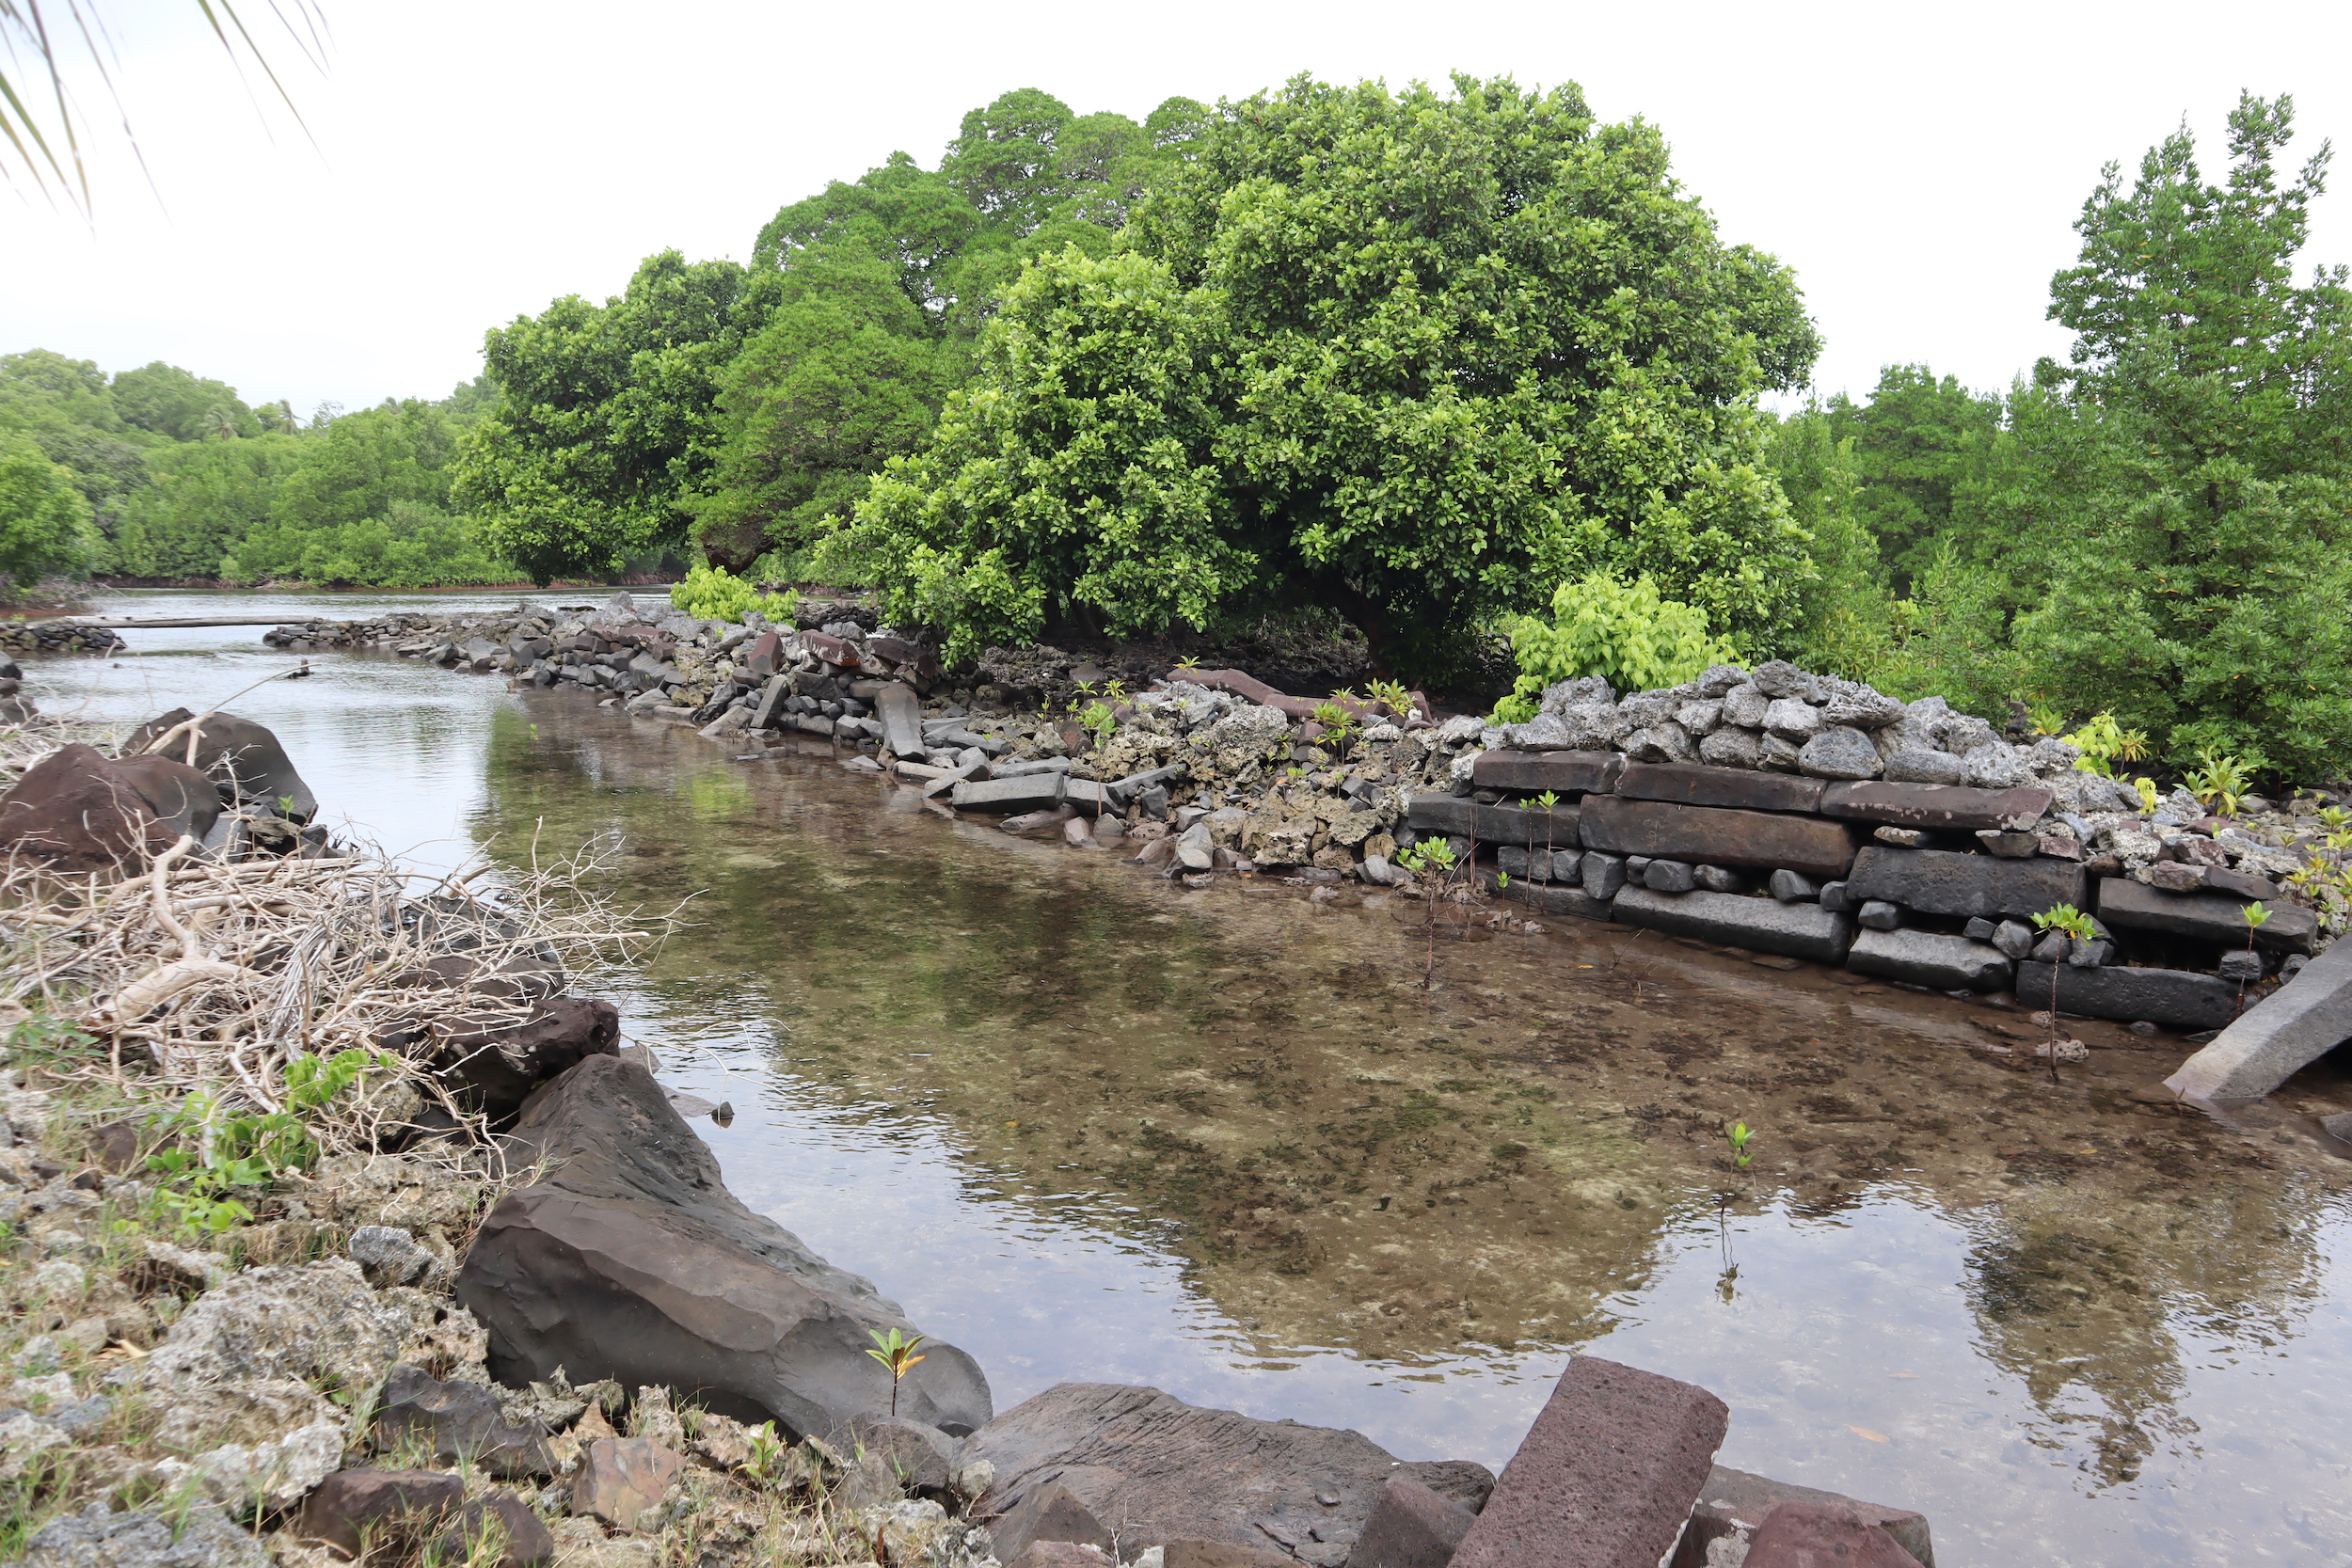 Nan Madol – Ancient city on the water